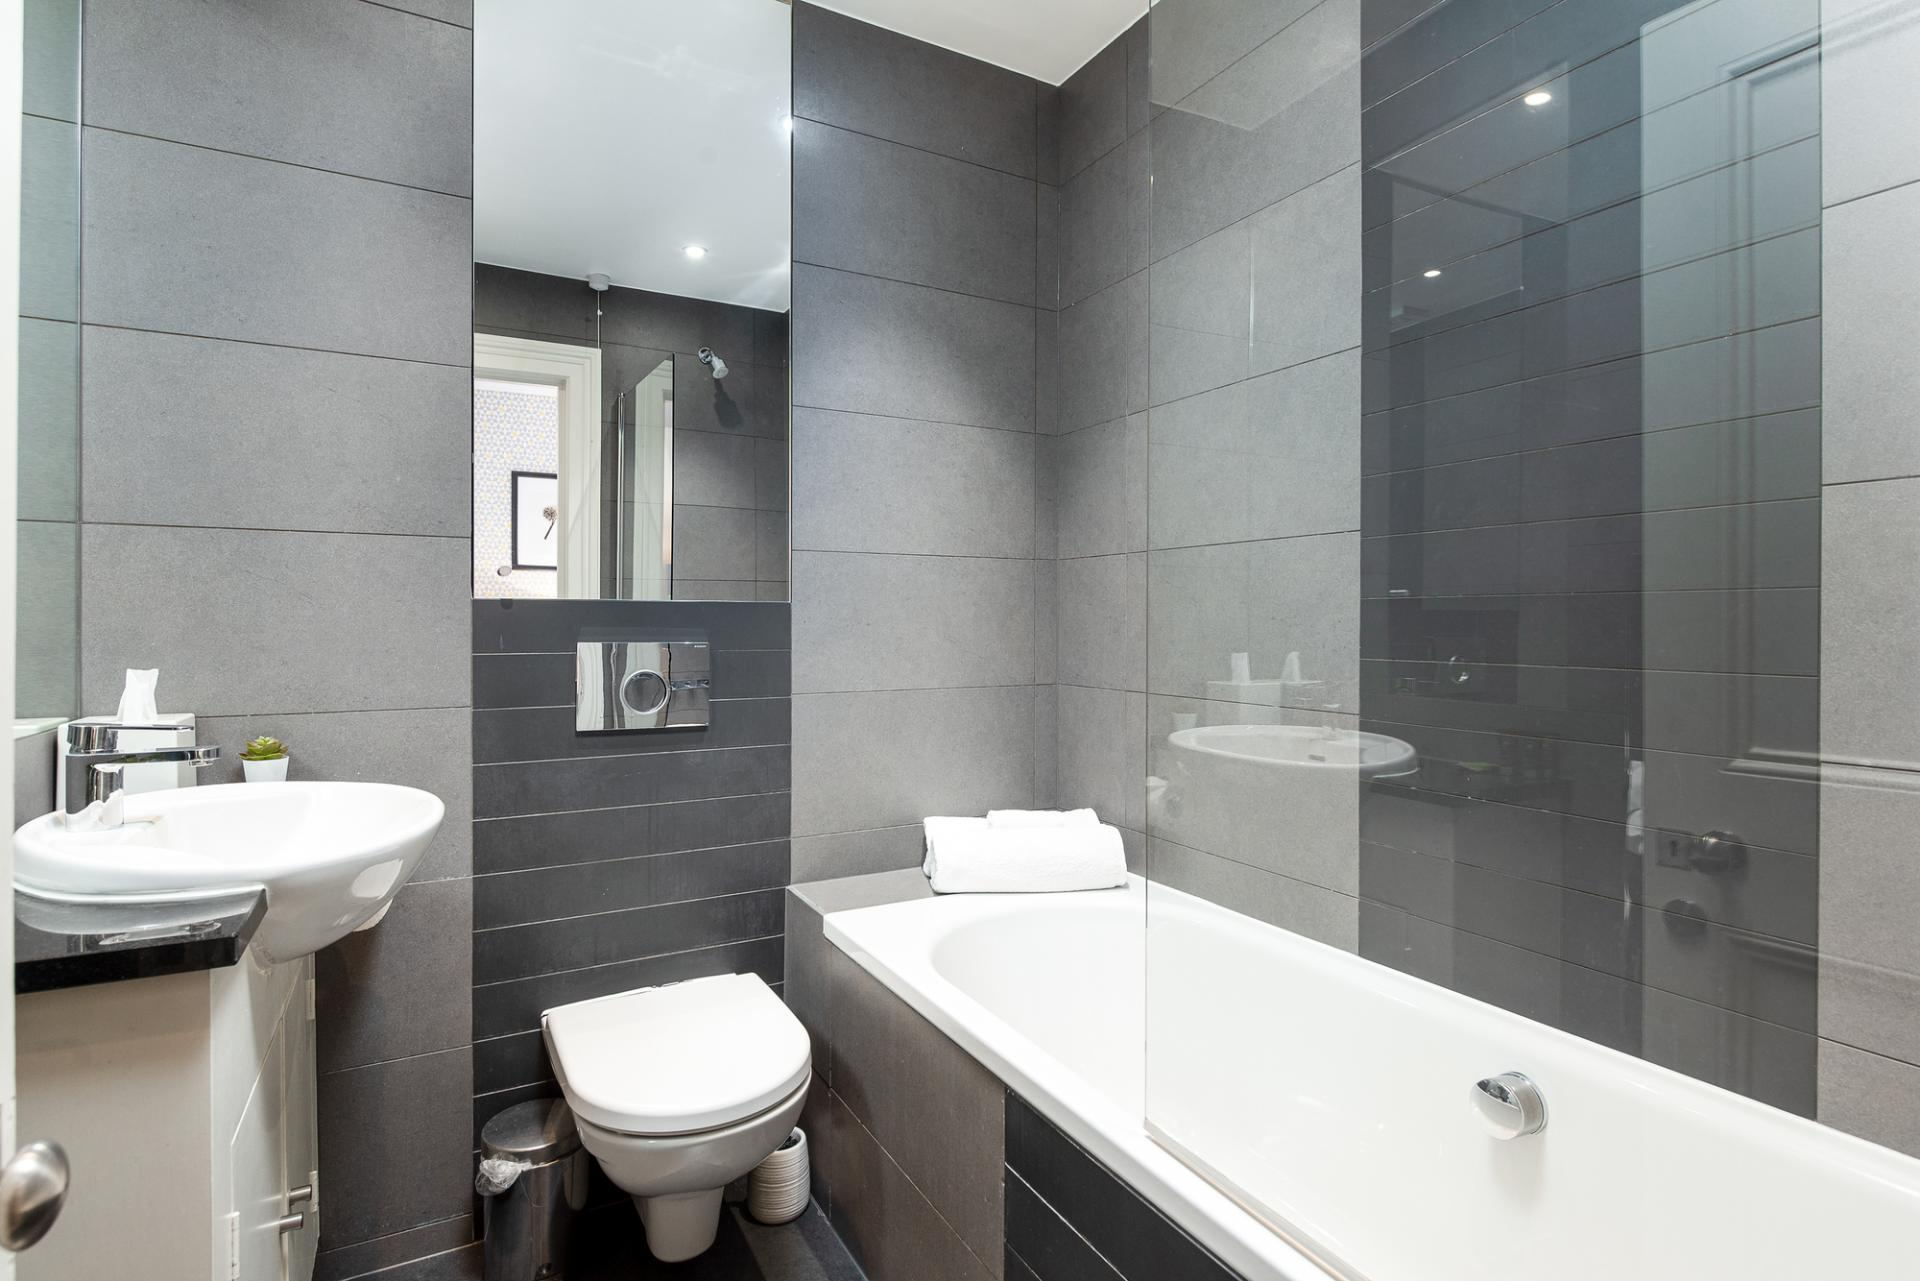 Bathroom at Draycott Place Serviced Apartments, Chelsea, London